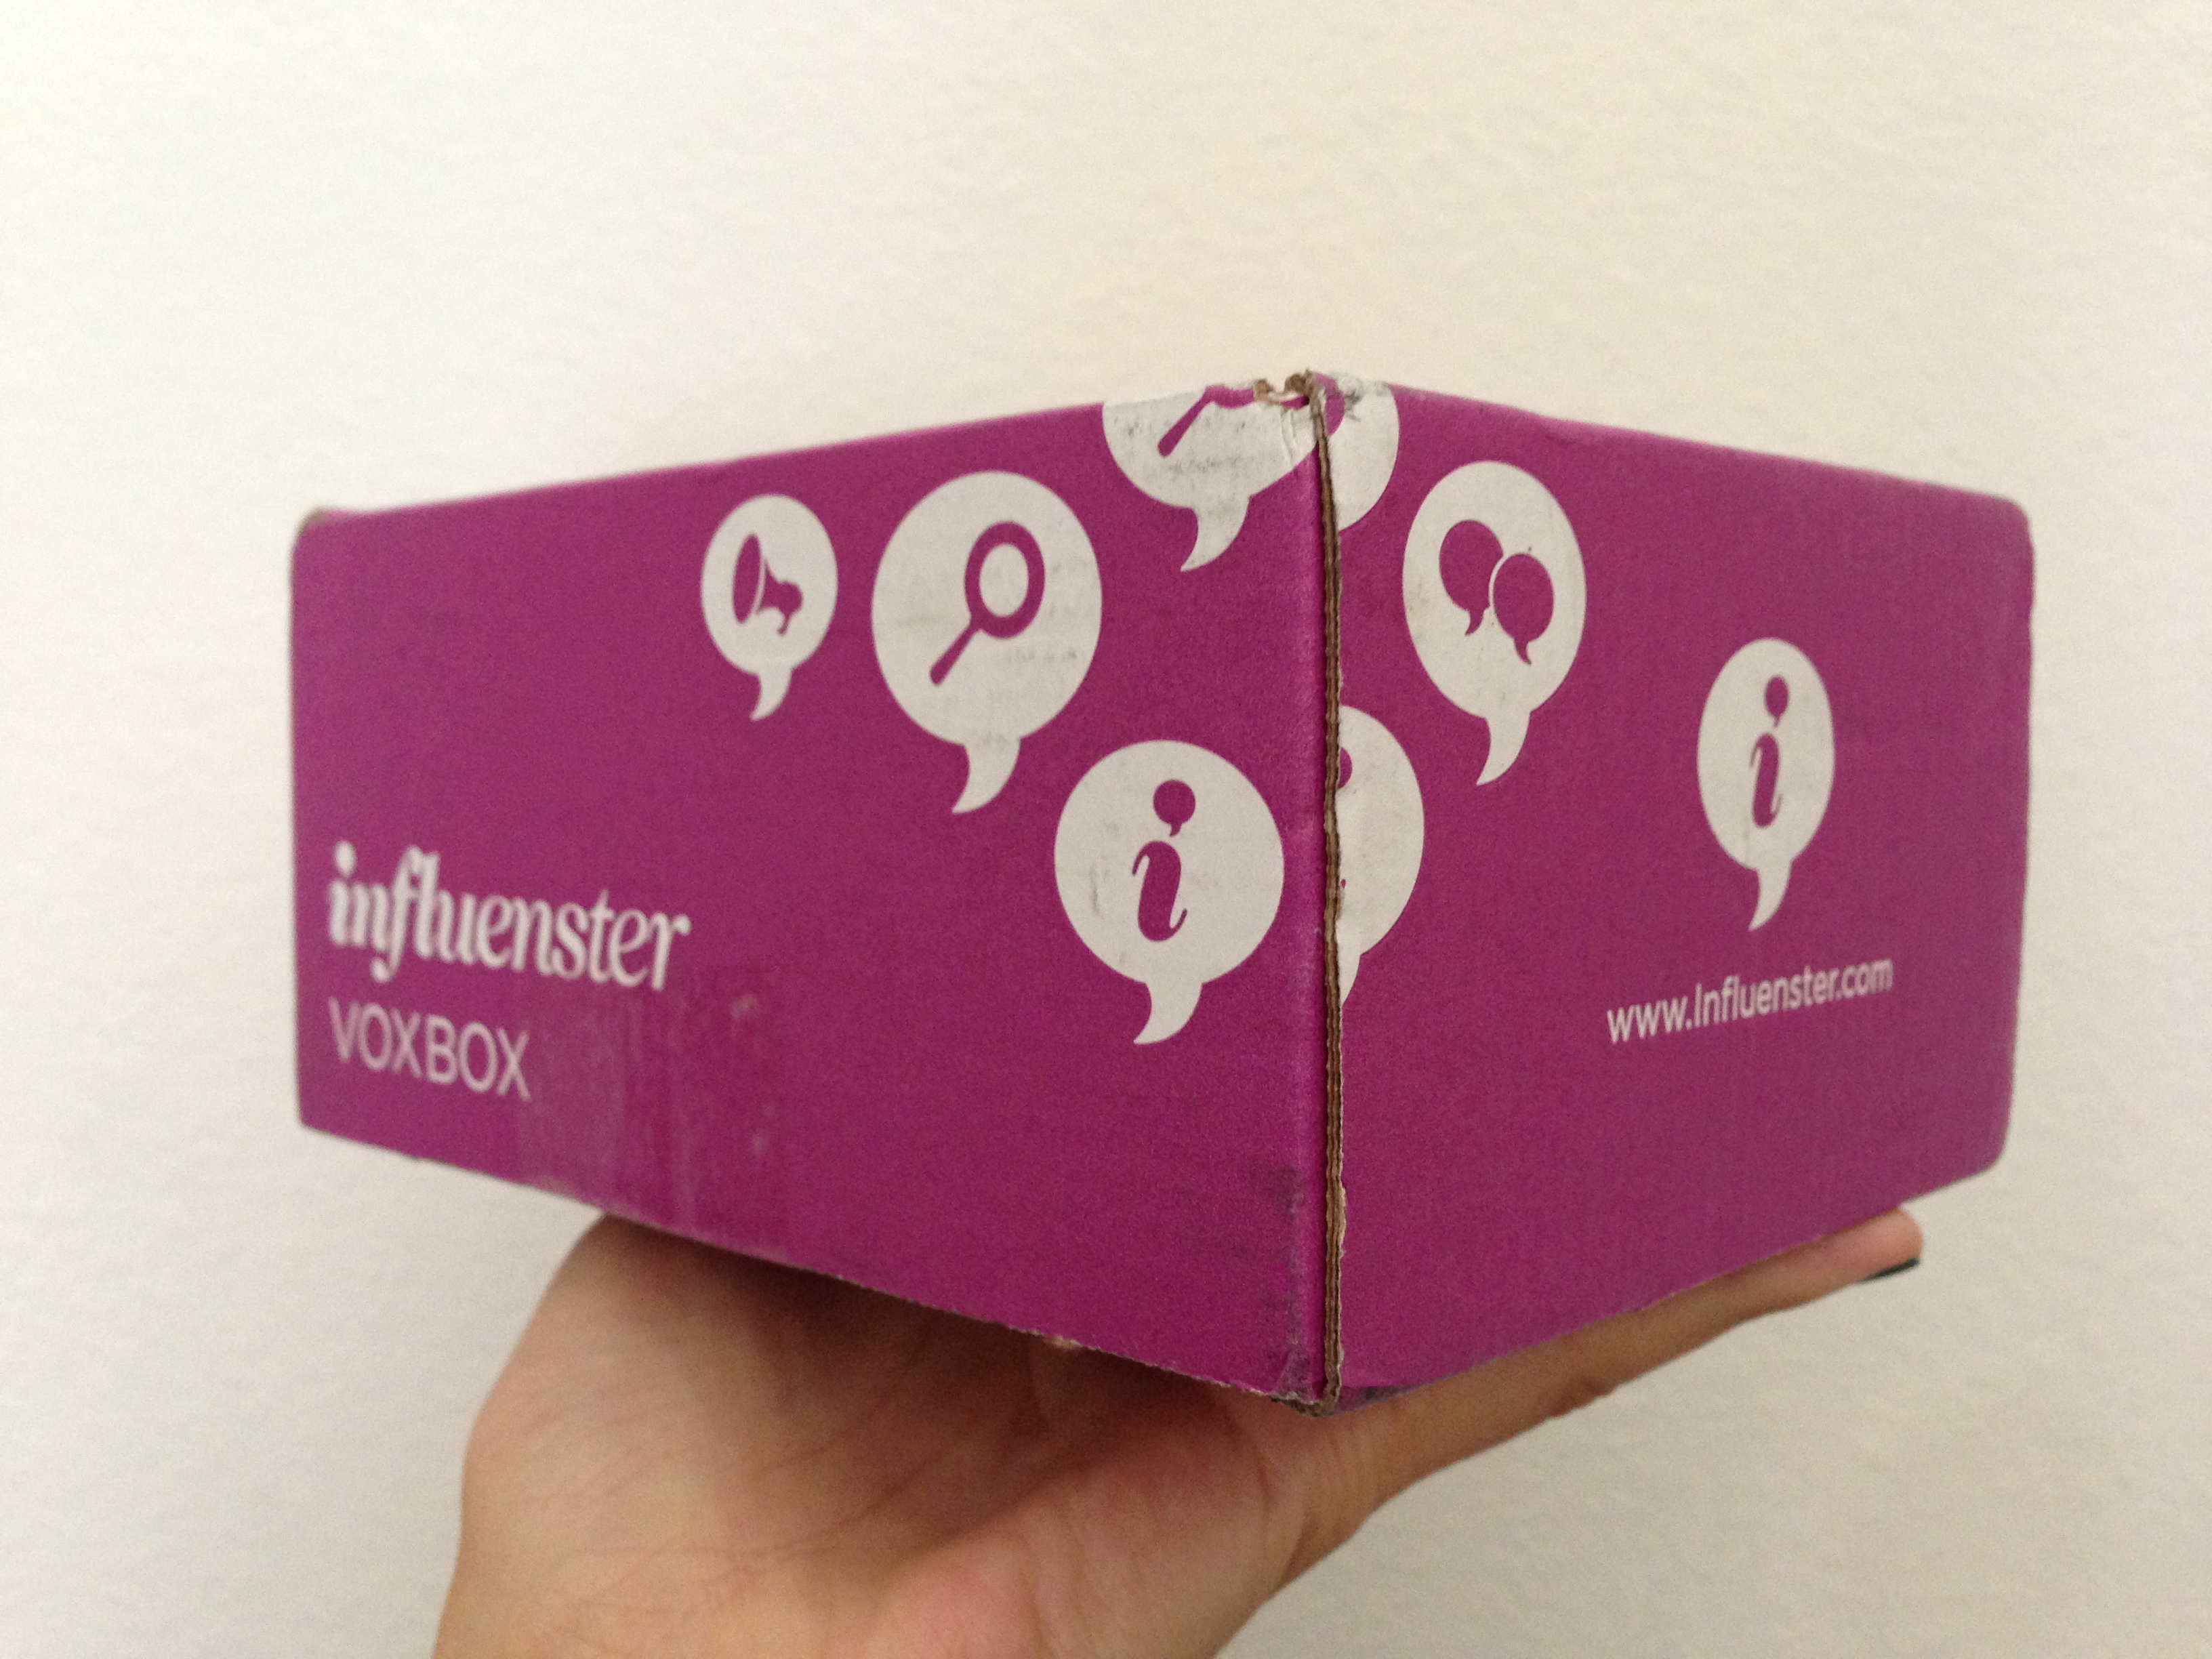 How to Get an Influenster VoxBox Full of Free Stuff